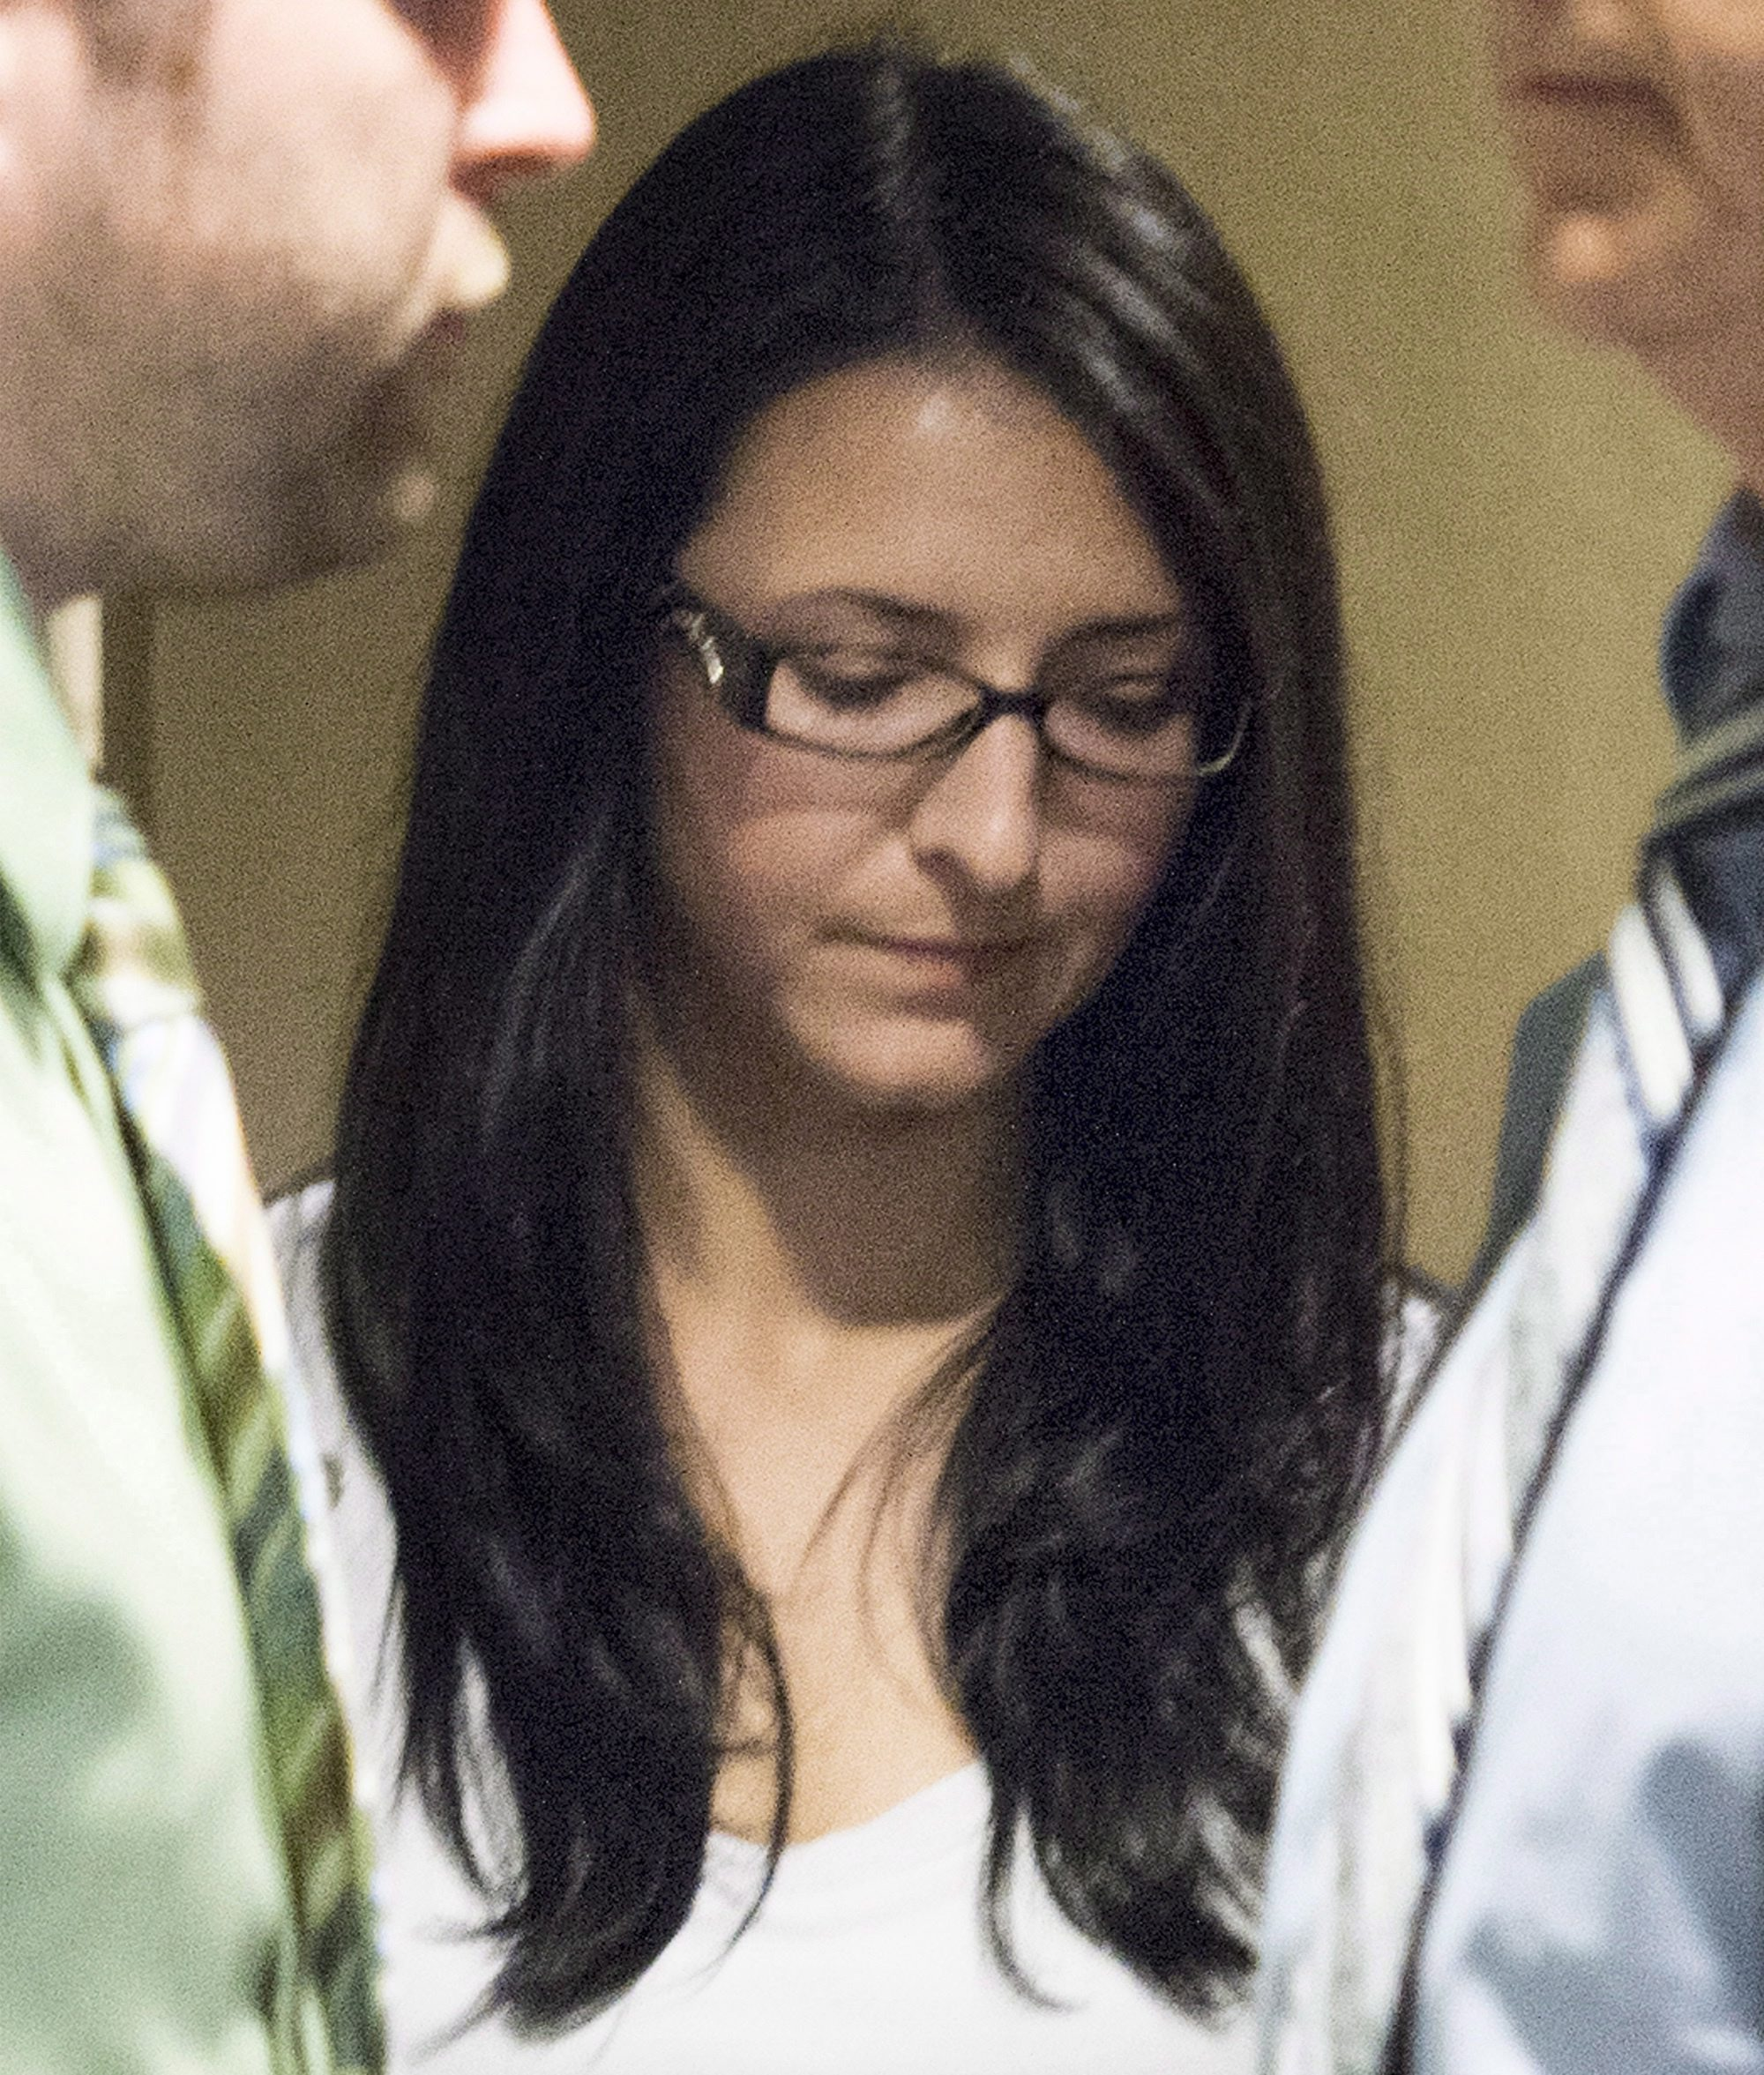 Emma Czornobaj, shown here in this June 3, 2014, file photo at the Montreal Courthouse in Canada, was found guilty in the deaths of two motorcyclists who collided with her car after she stopped for ducks on a Montreal-area highway. On Thursday, a judge sentenced her to 90 days in jail.